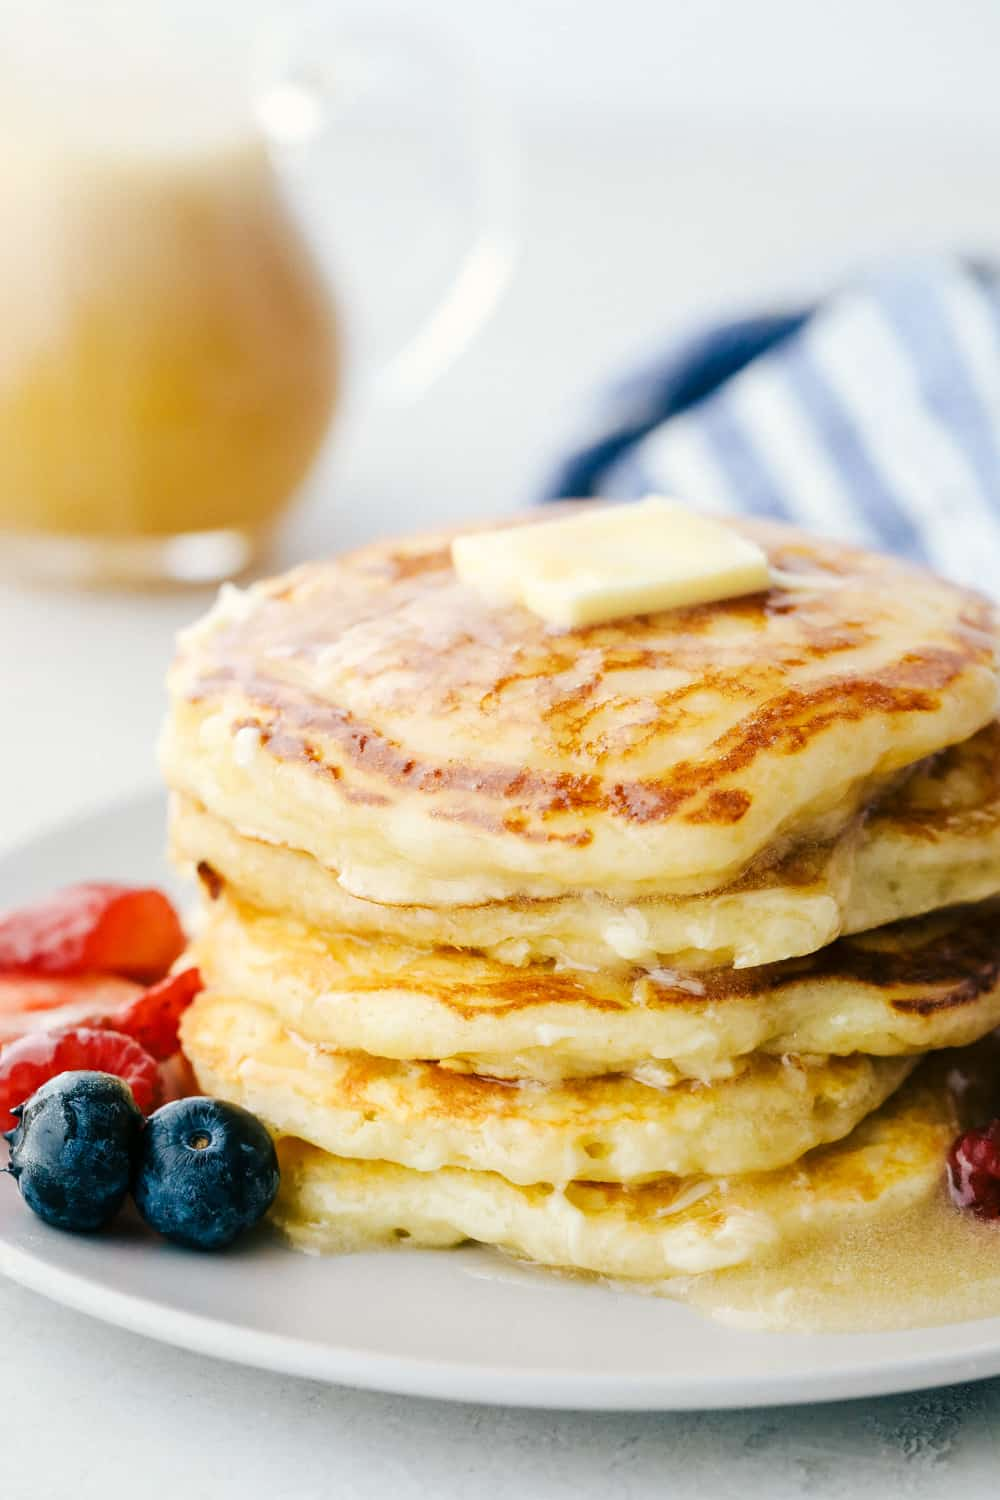 Fluffy Buttermilk pancakes on a plate with butter and syrup.